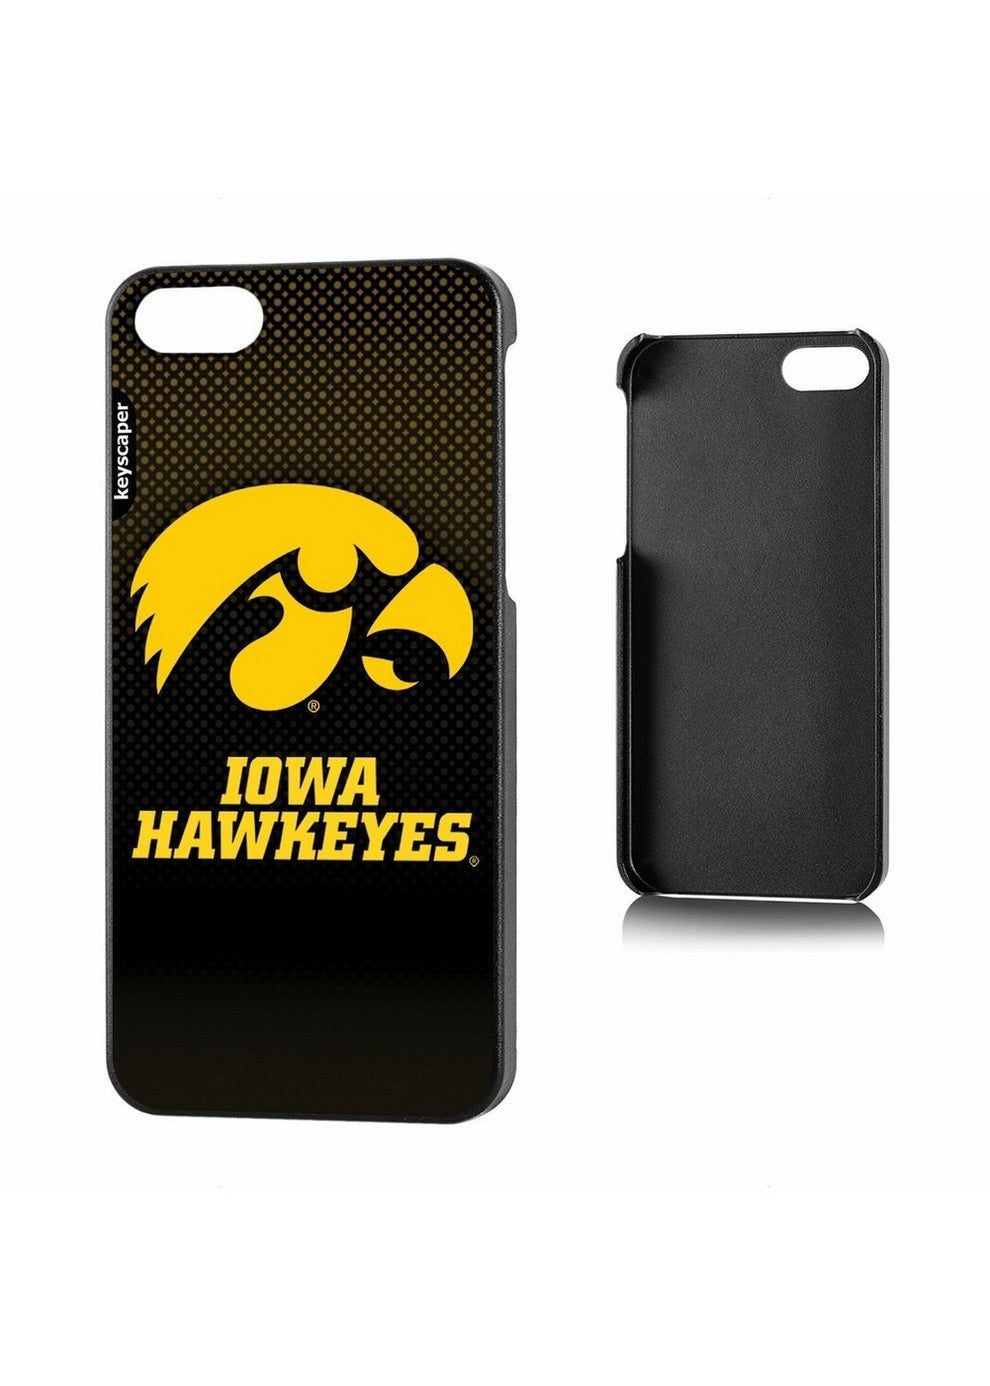 Ncaa Iphone 5 Case - Iowa Hawkeyes